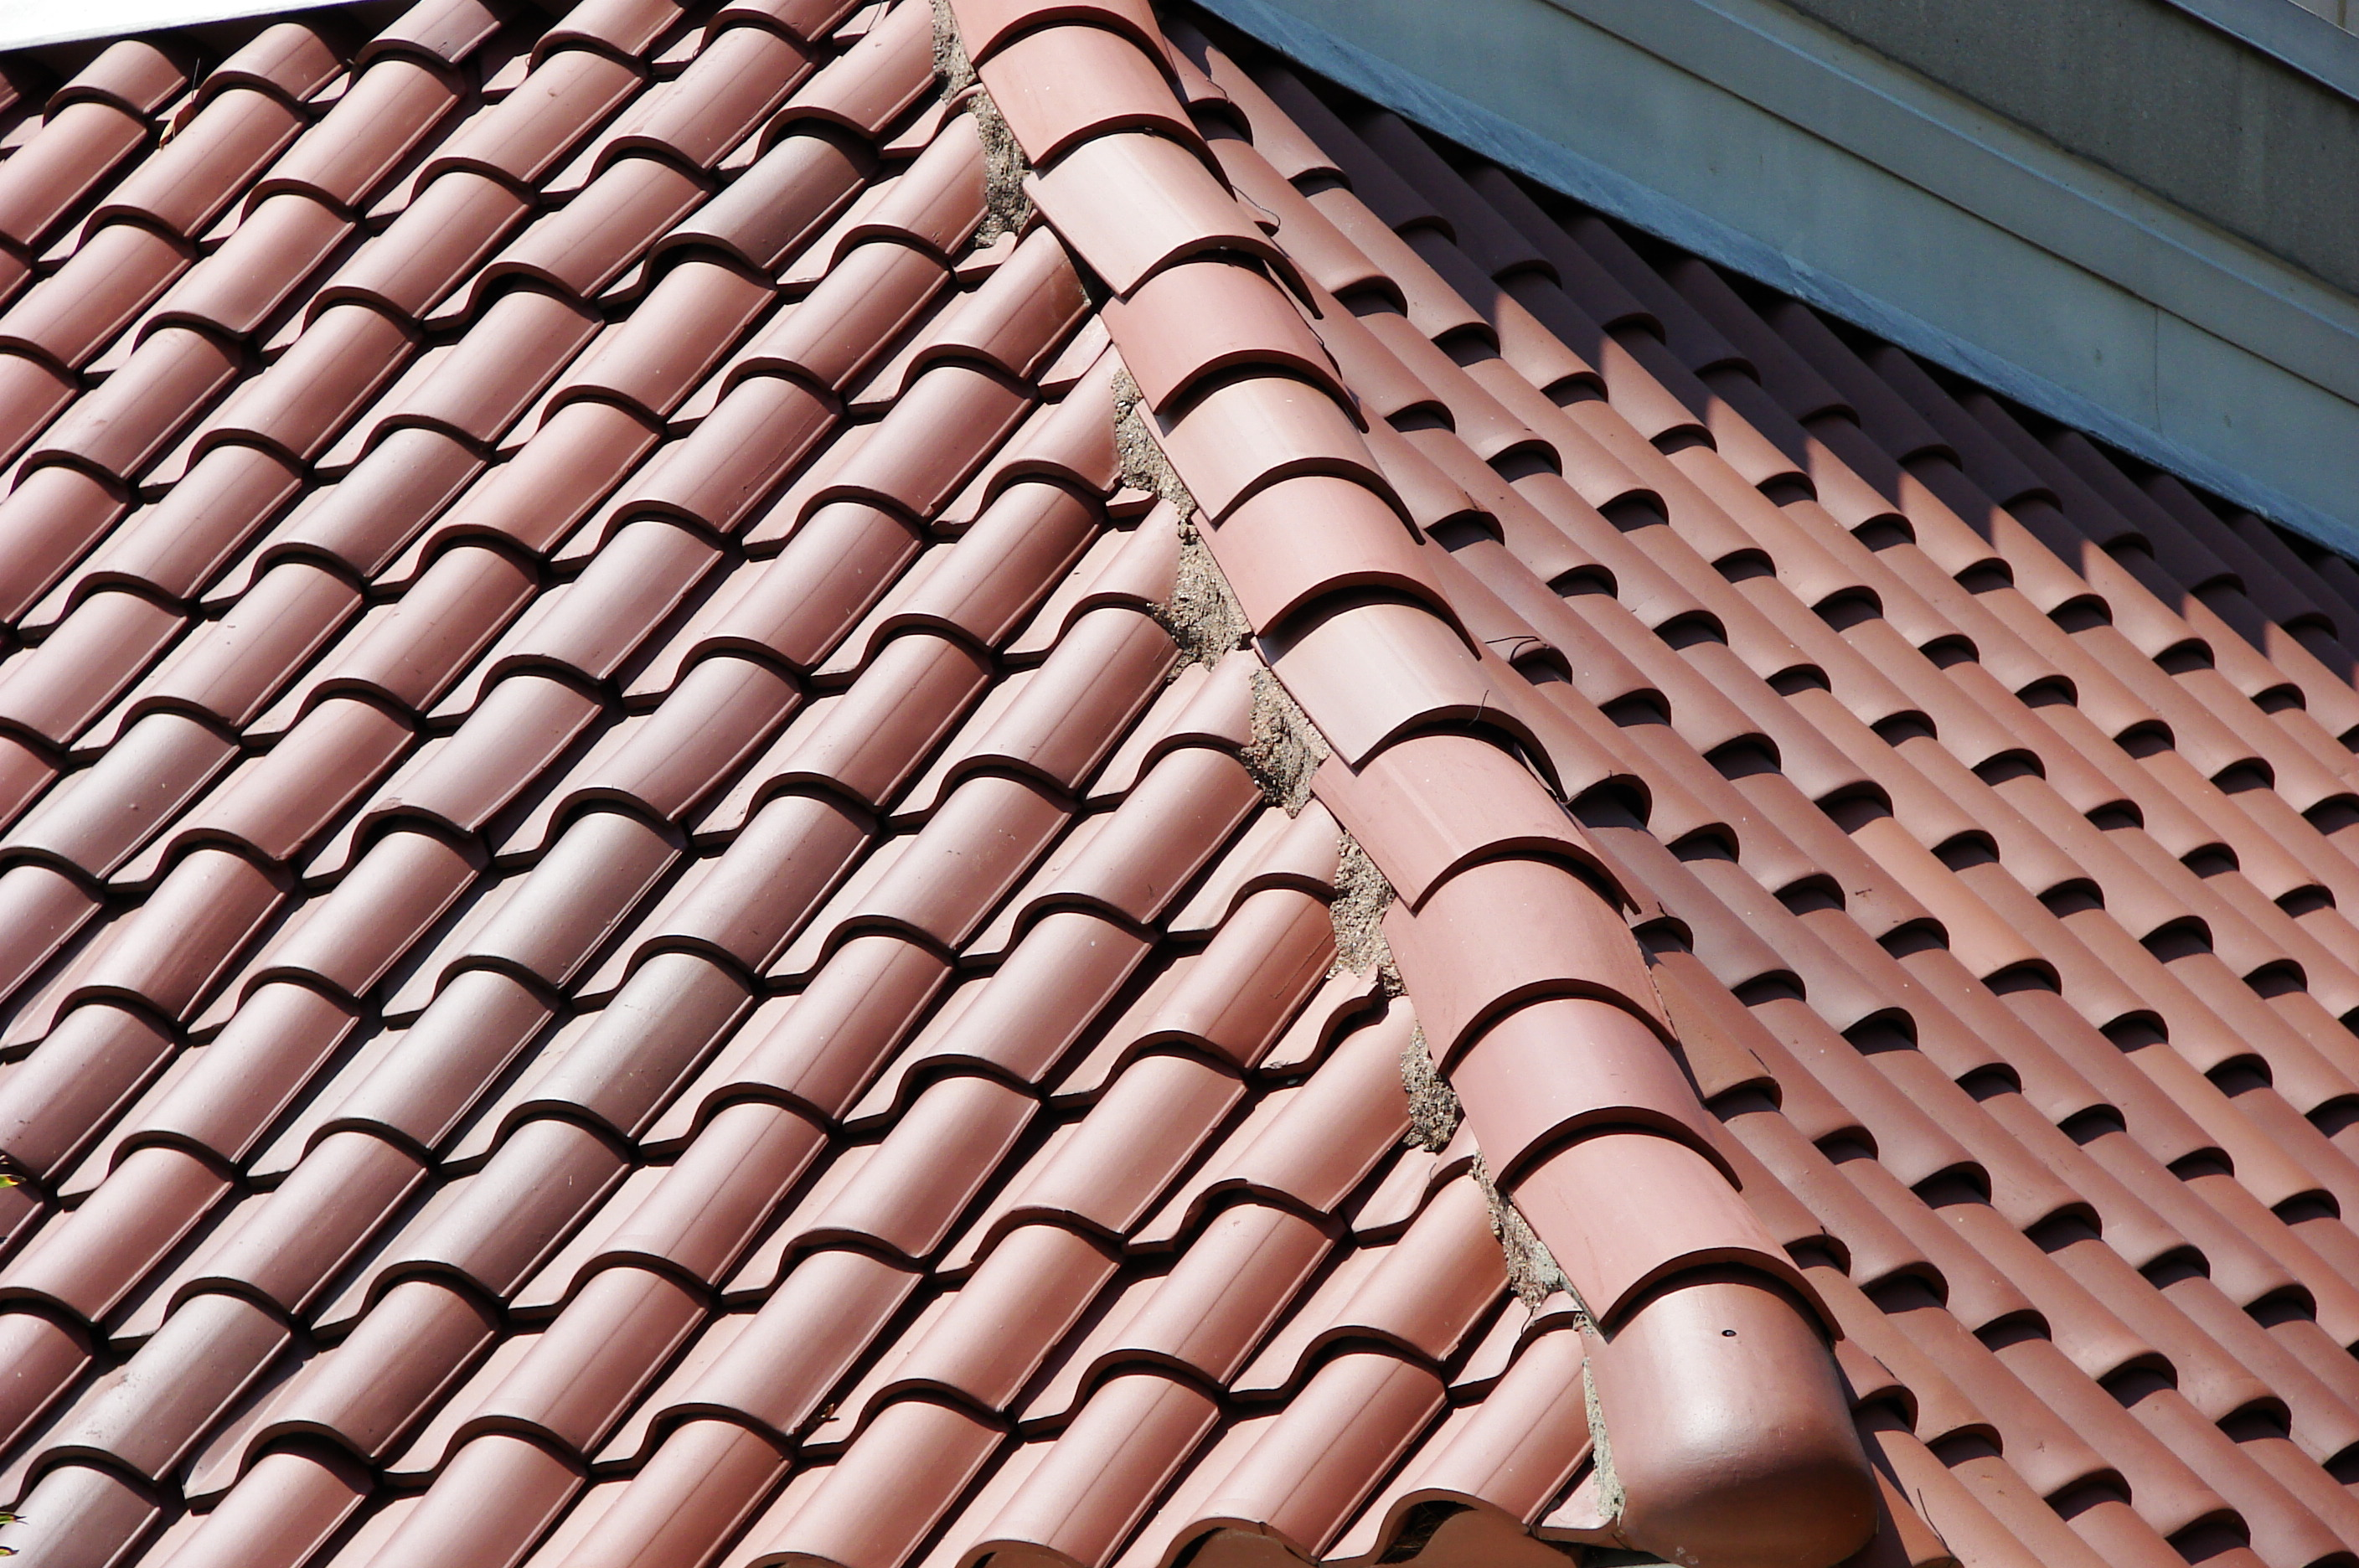 Tiles Roofing